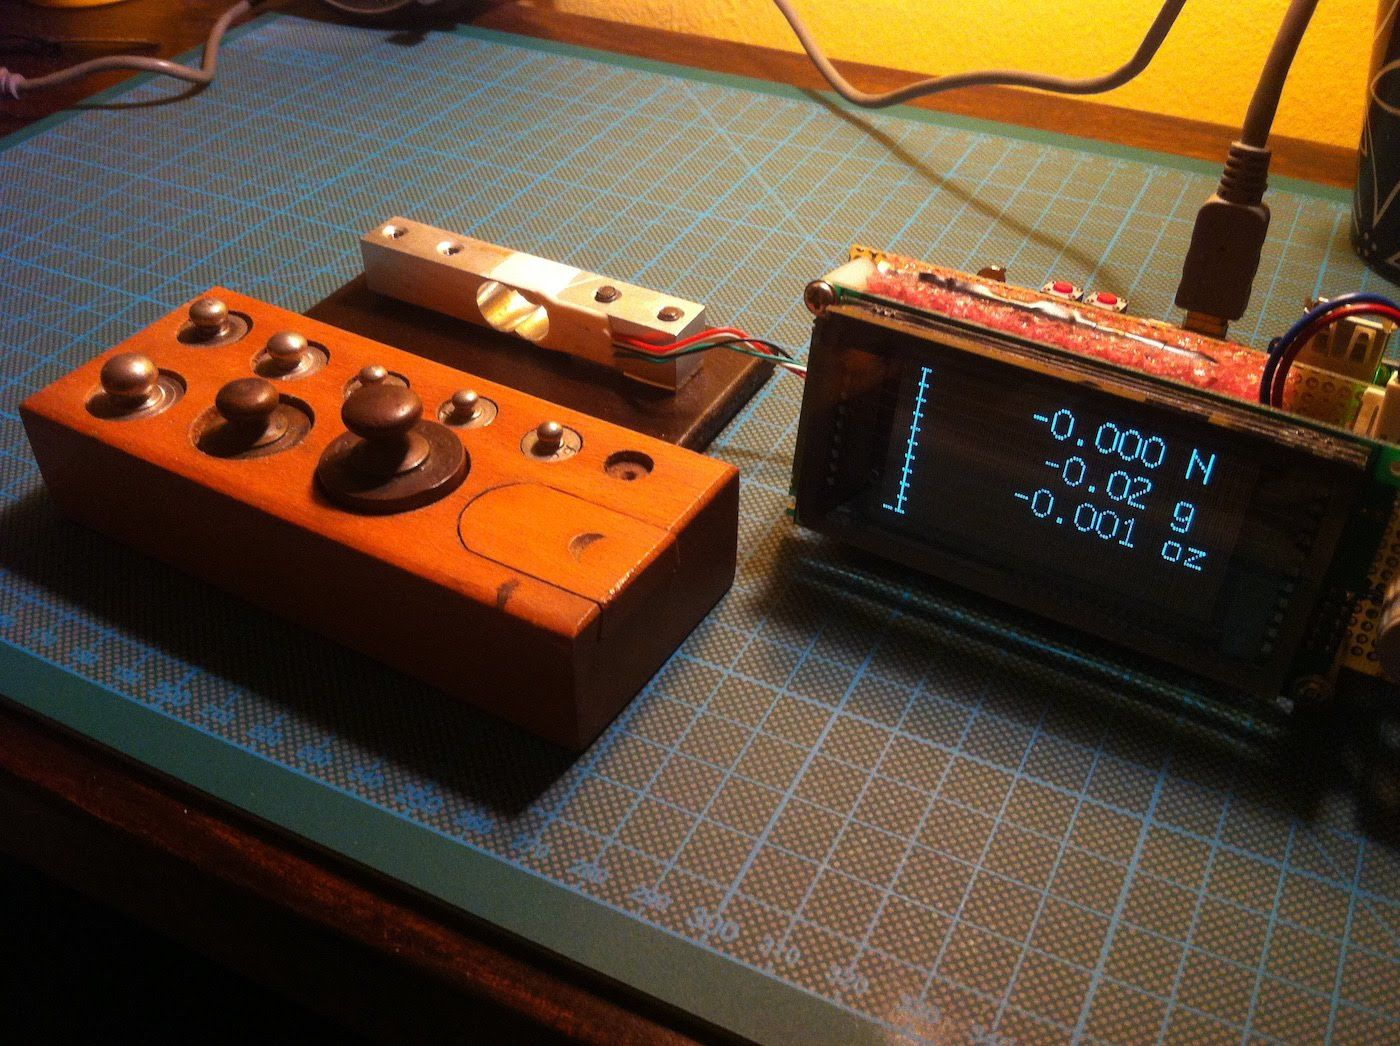 Arduino Based Digital Scale With Hx711 And Vfd Display Geeking Out Electronics Projects